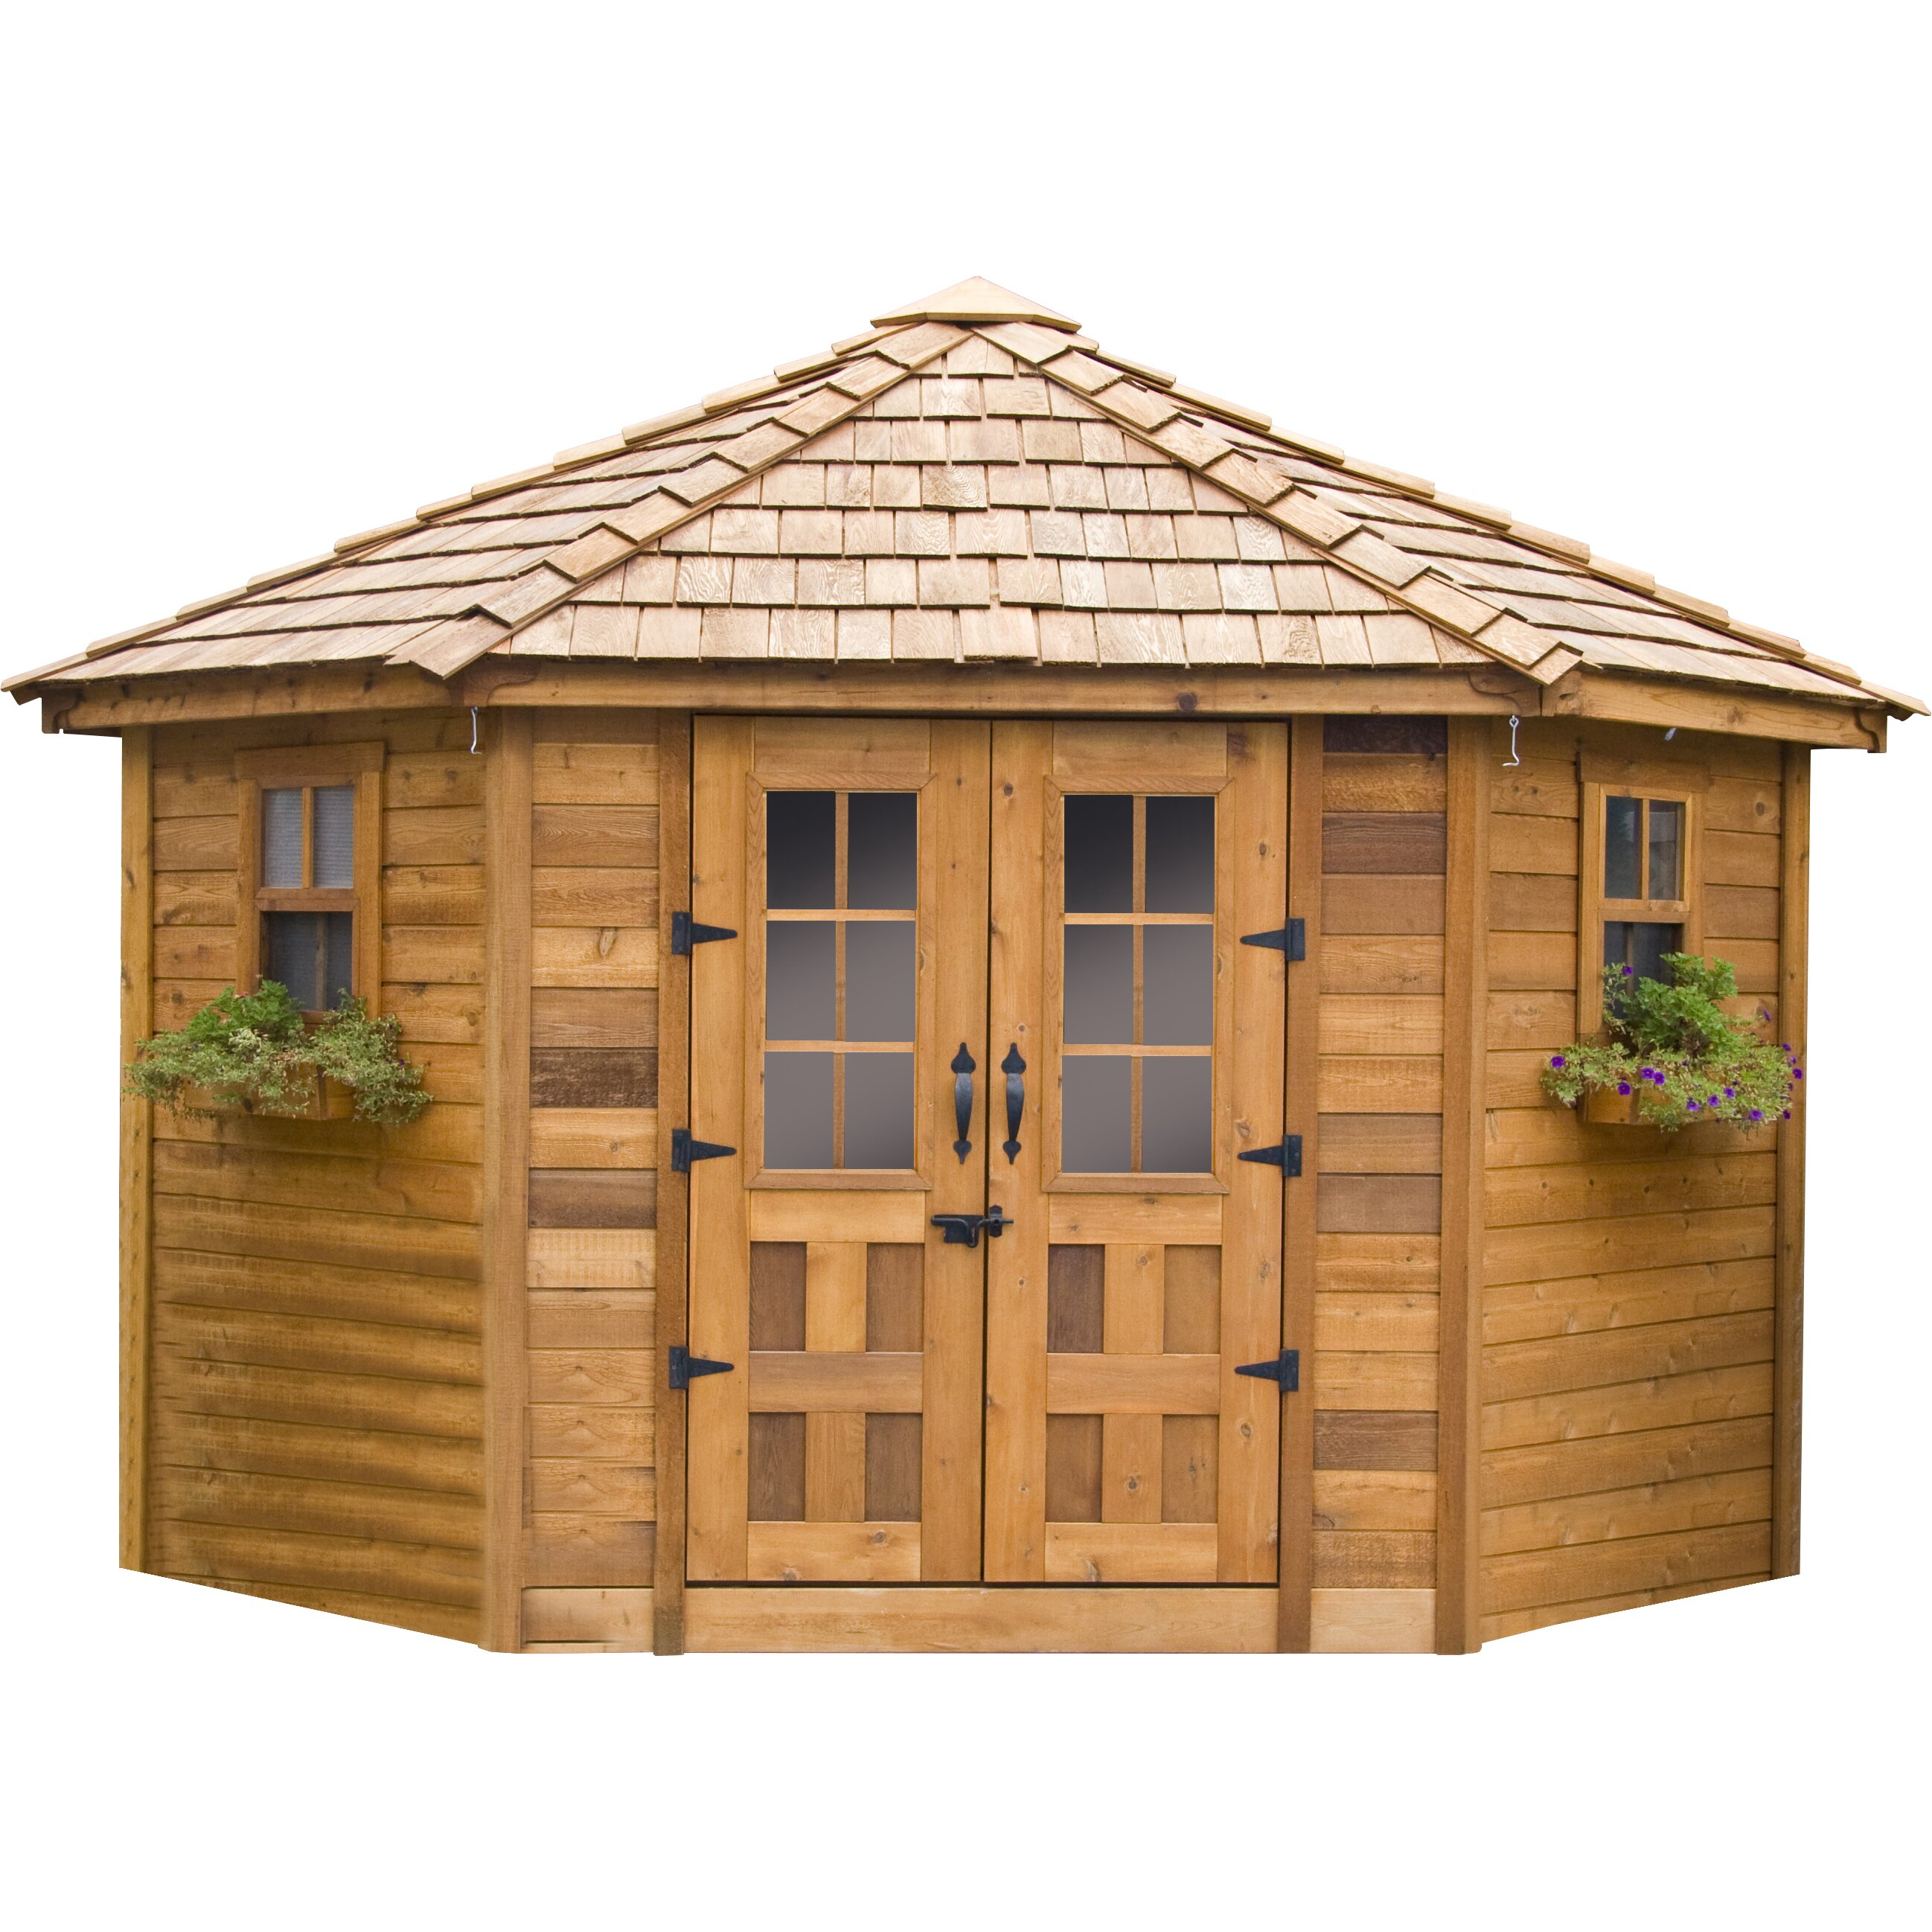 Outdoor living today 9 ft w x 9 ft d wood garden shed for 9 x 9 garden shed